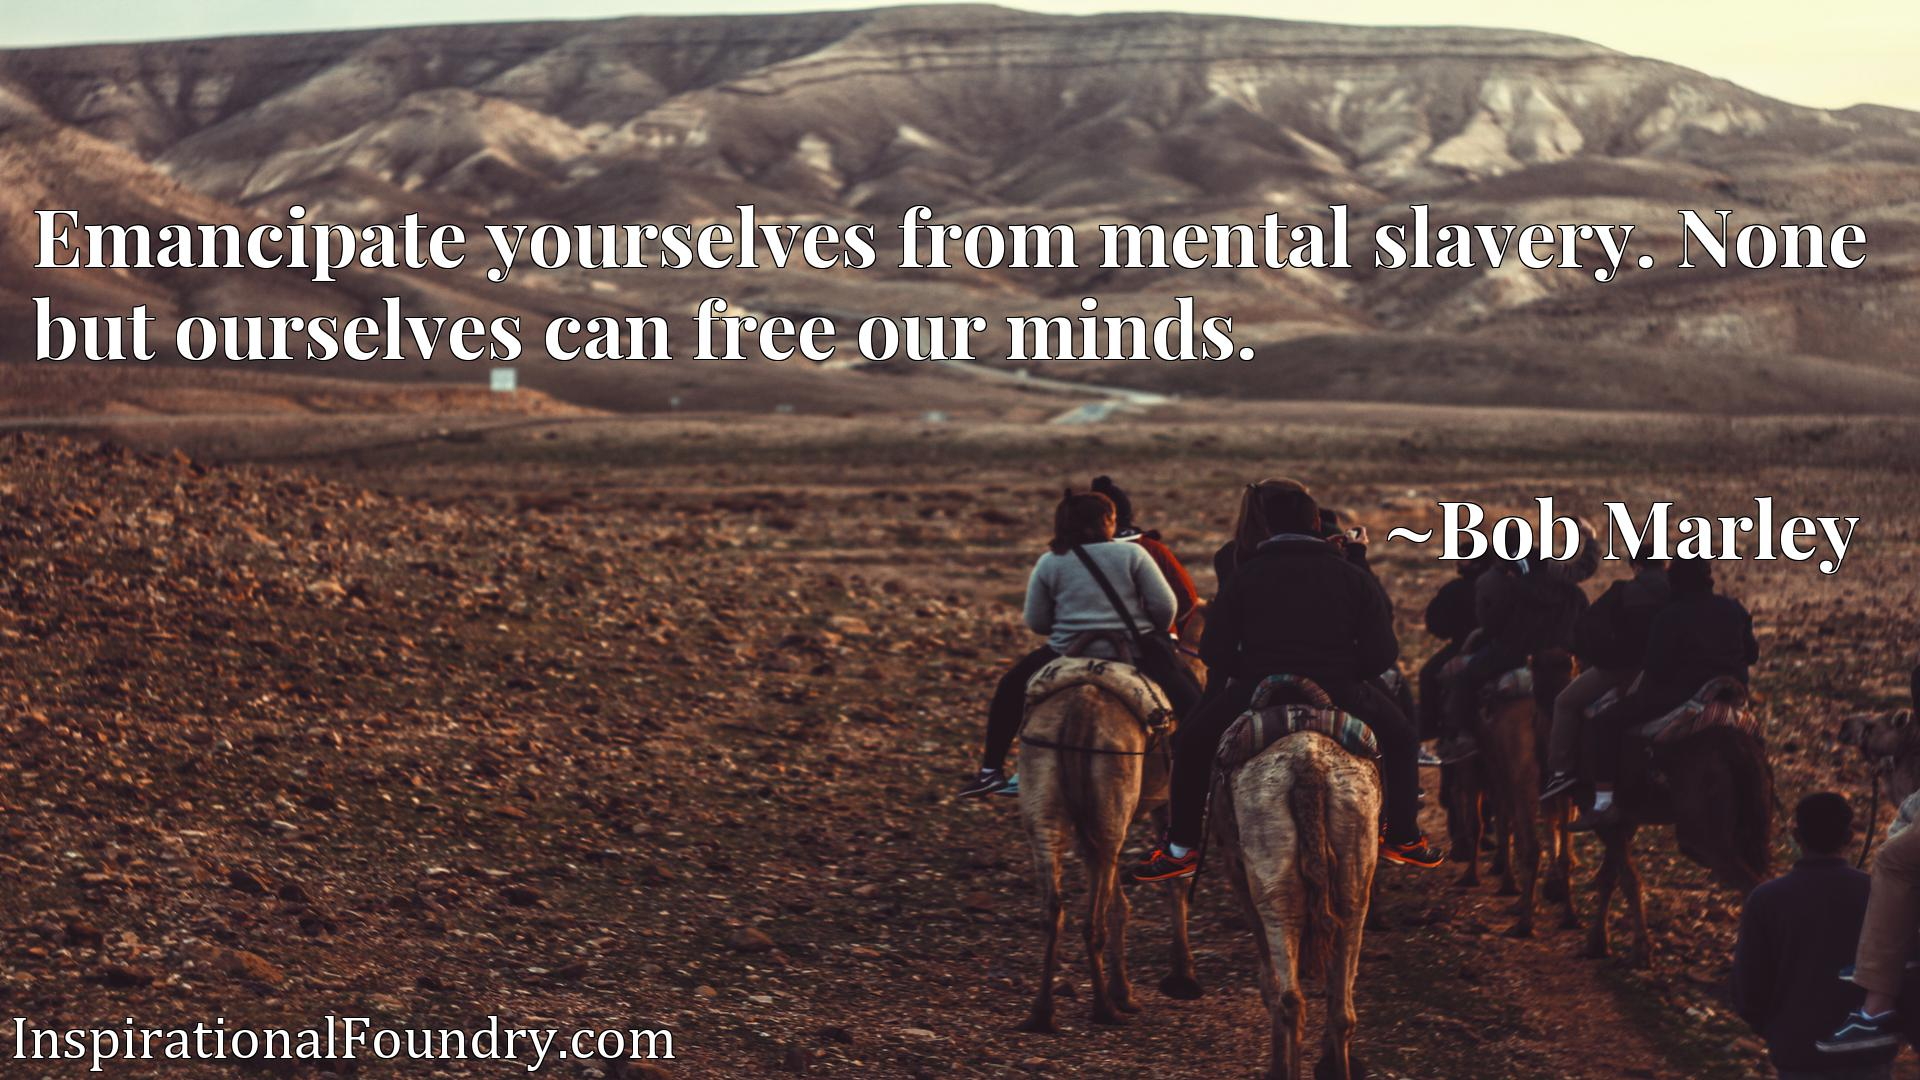 Emancipate yourselves from mental slavery. None but ourselves can free our minds.